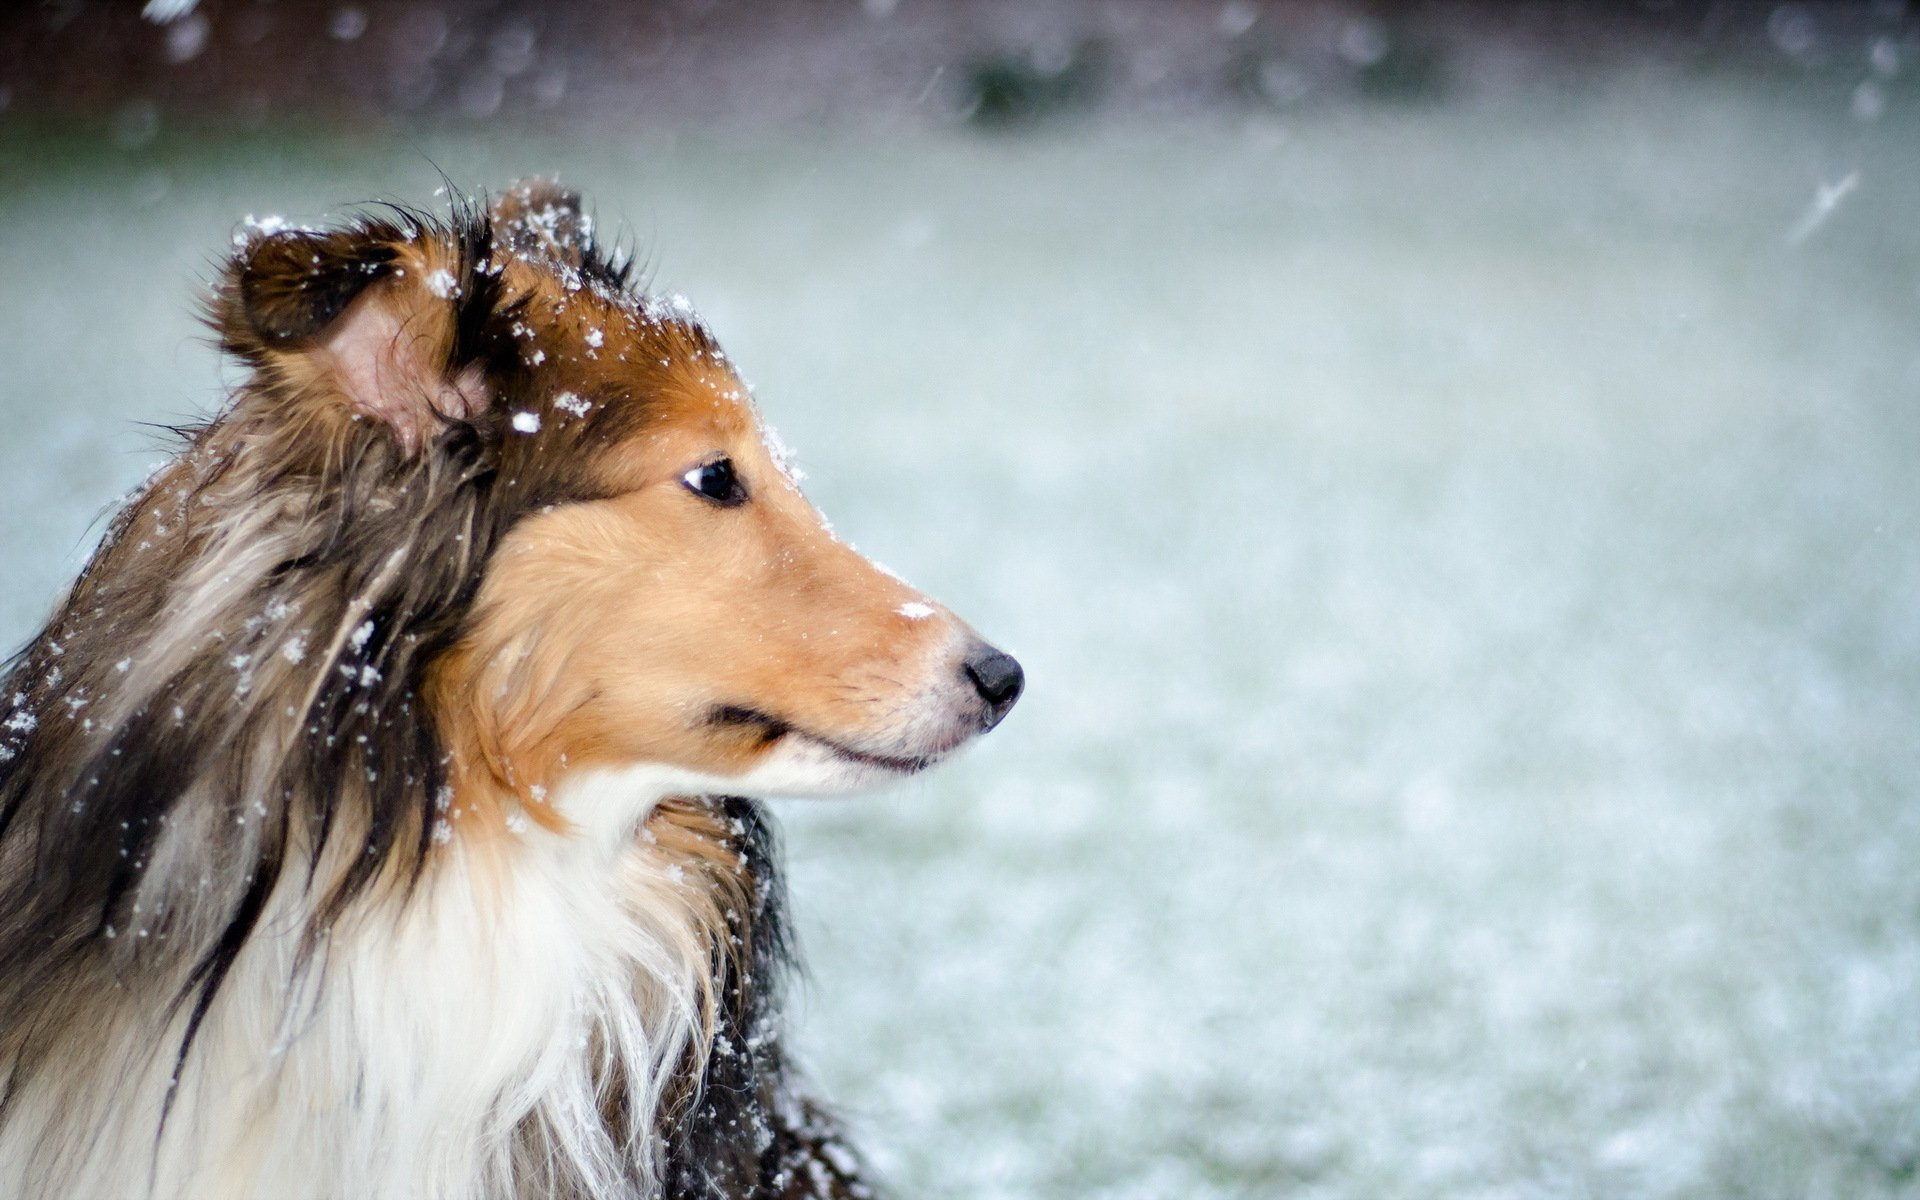 Download Hd Wallpapers Of Cute Puppies Rough Collie Full Hd Wallpaper And Background Image